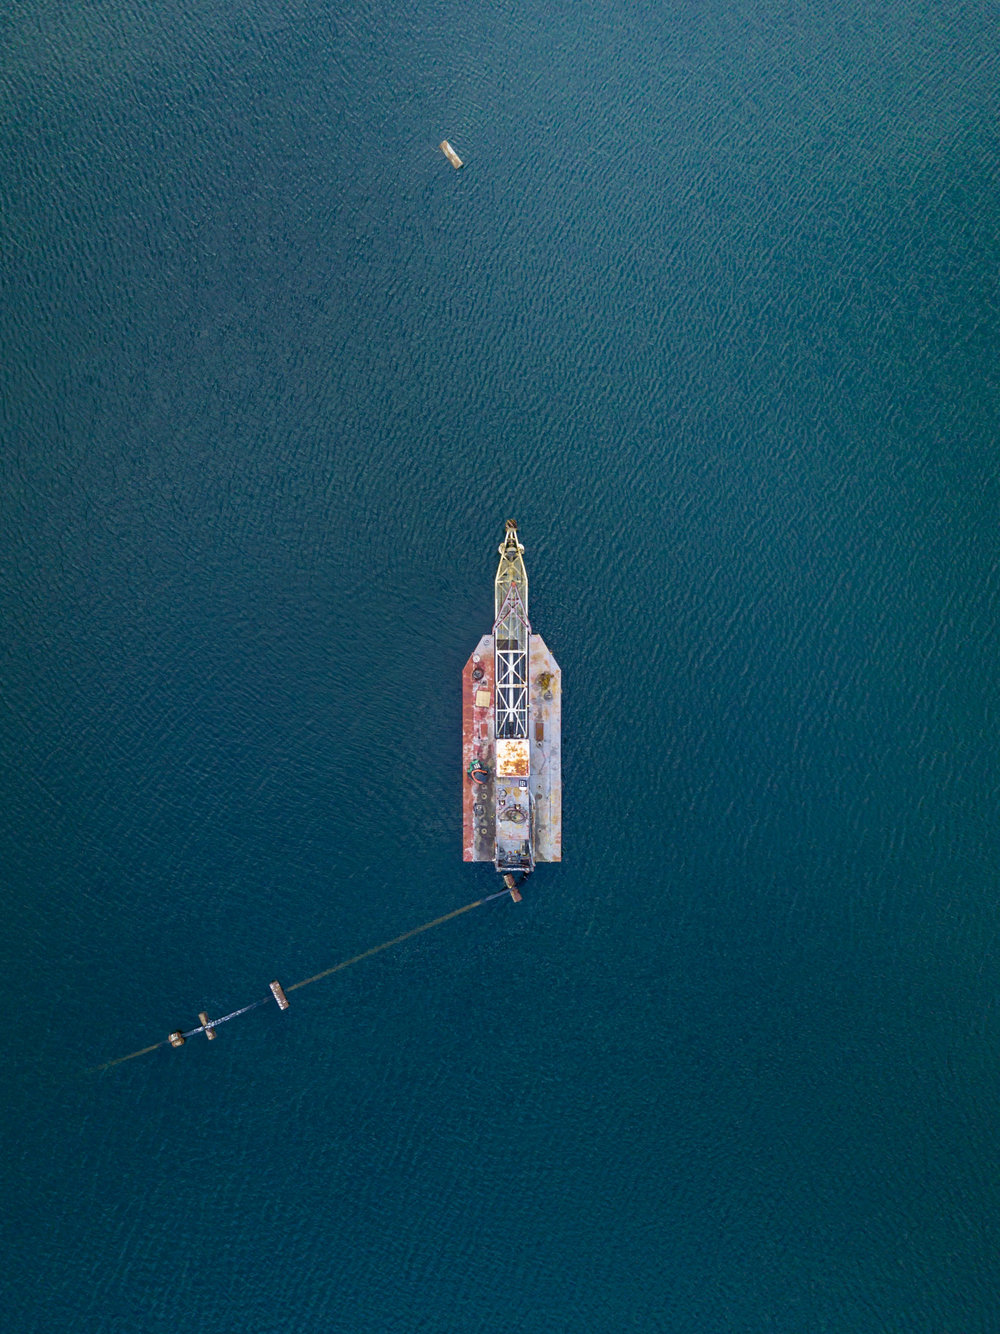 anchored_typoland_aerial.jpg